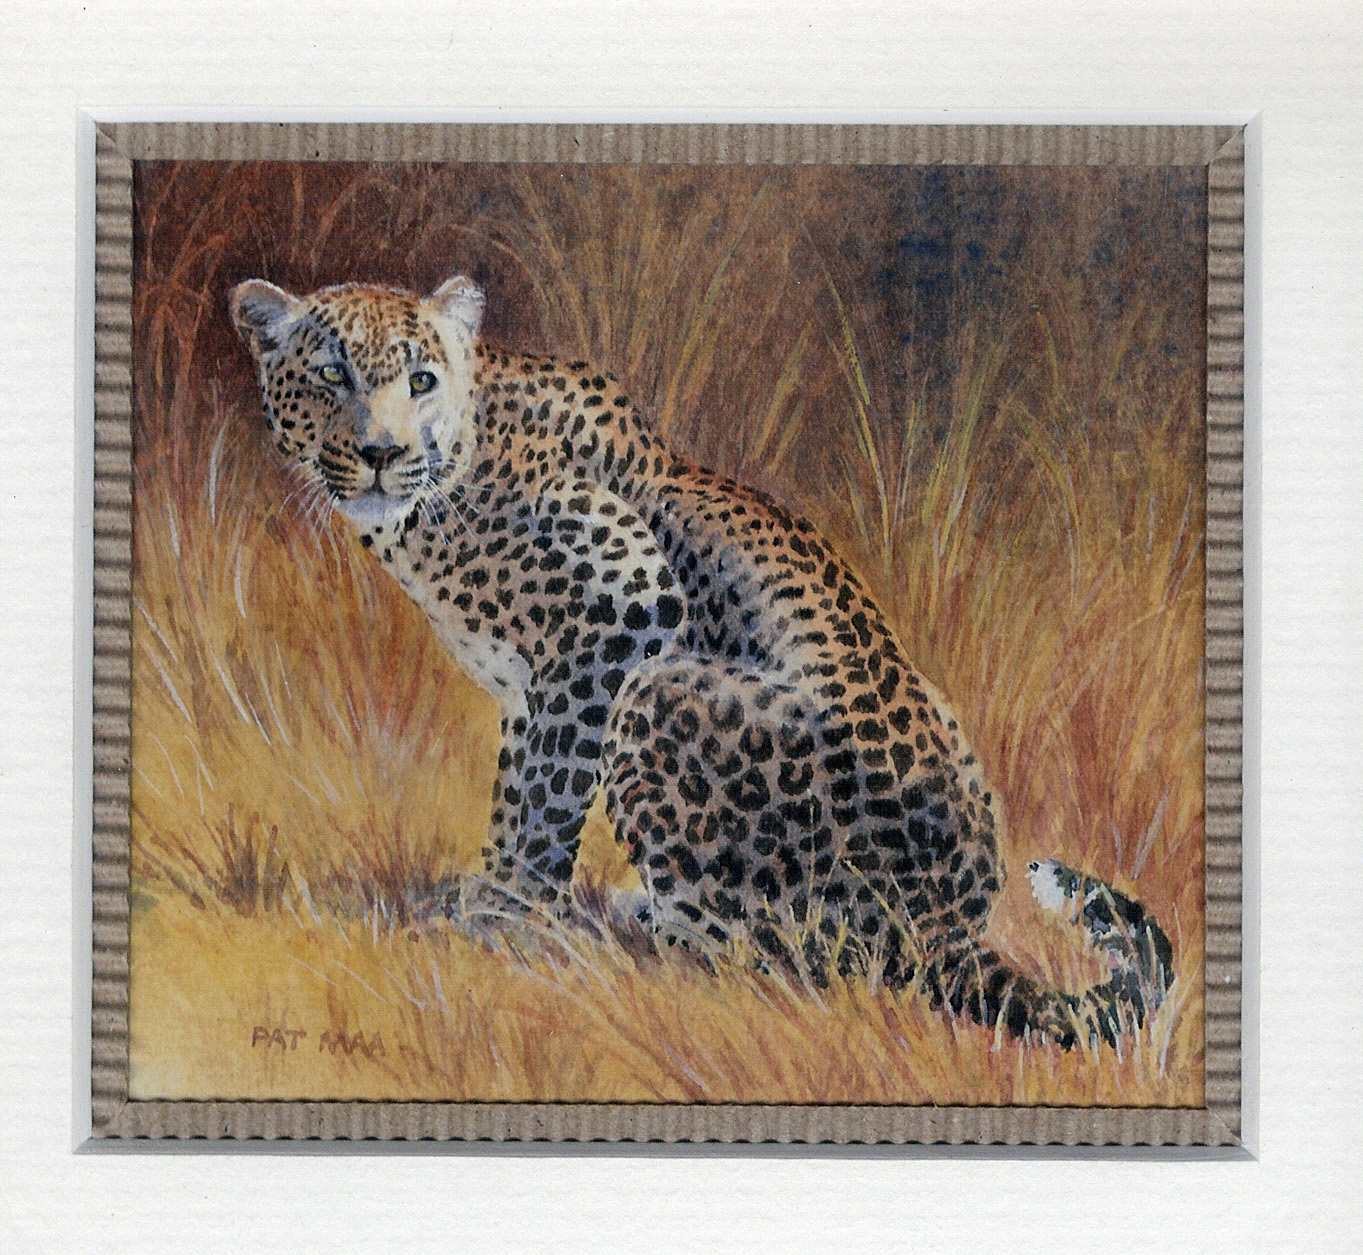 86 Leopard (Panthera Parous) by Pat Puttergill - Watercolour